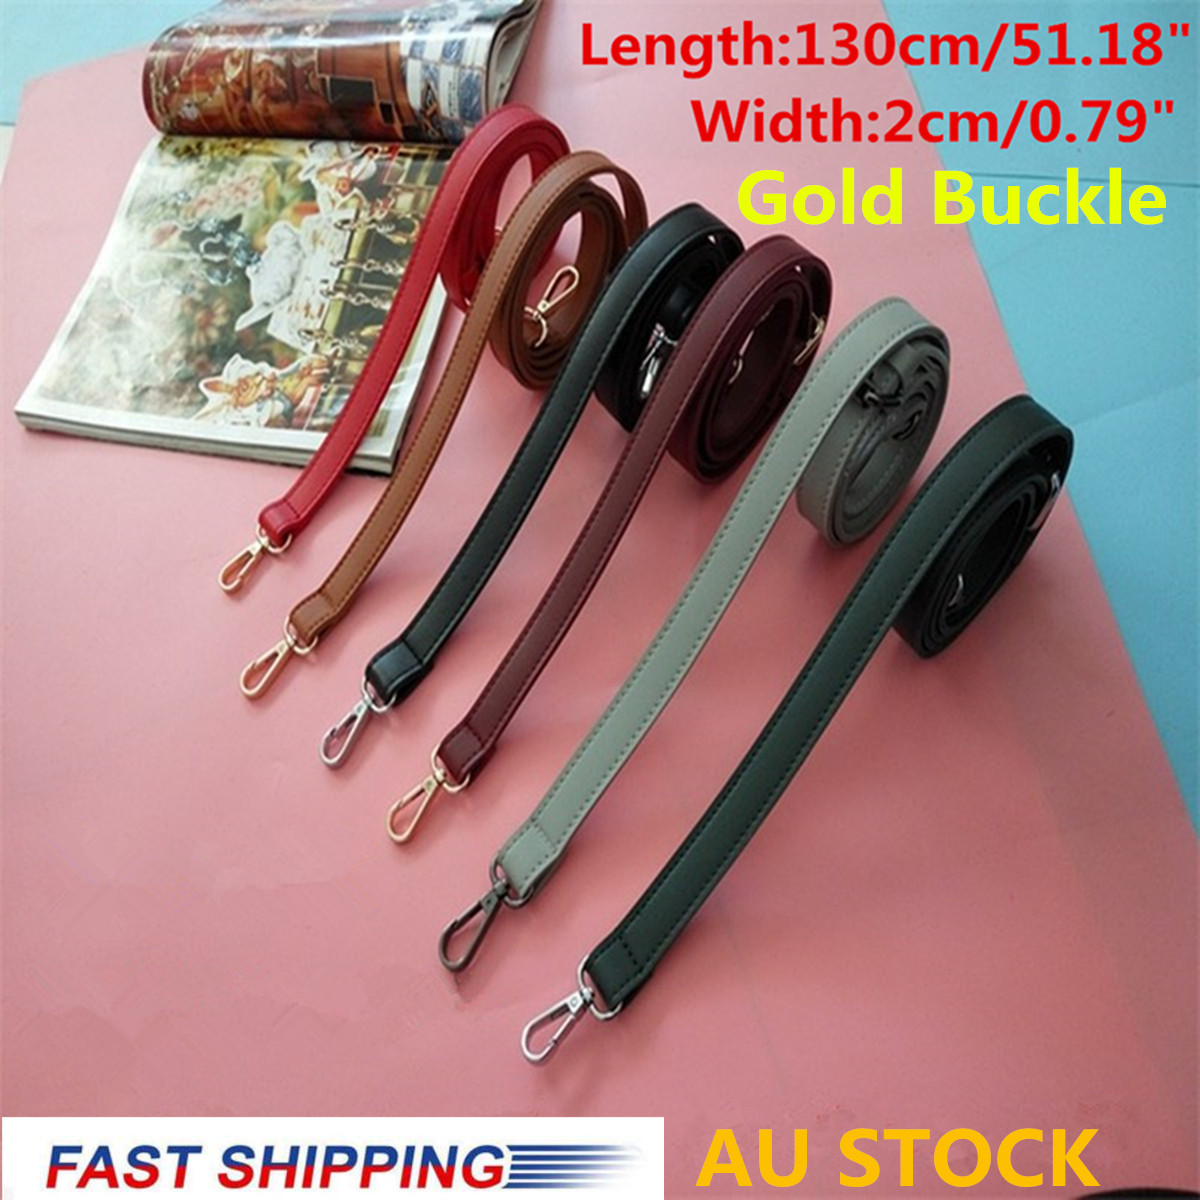 AEQUEEN 130CM Bag Straps PU Leather Shoulder Belts Replacement Handbag Strap Accessory Bags Parts Adjustable Belt Gold Buckle